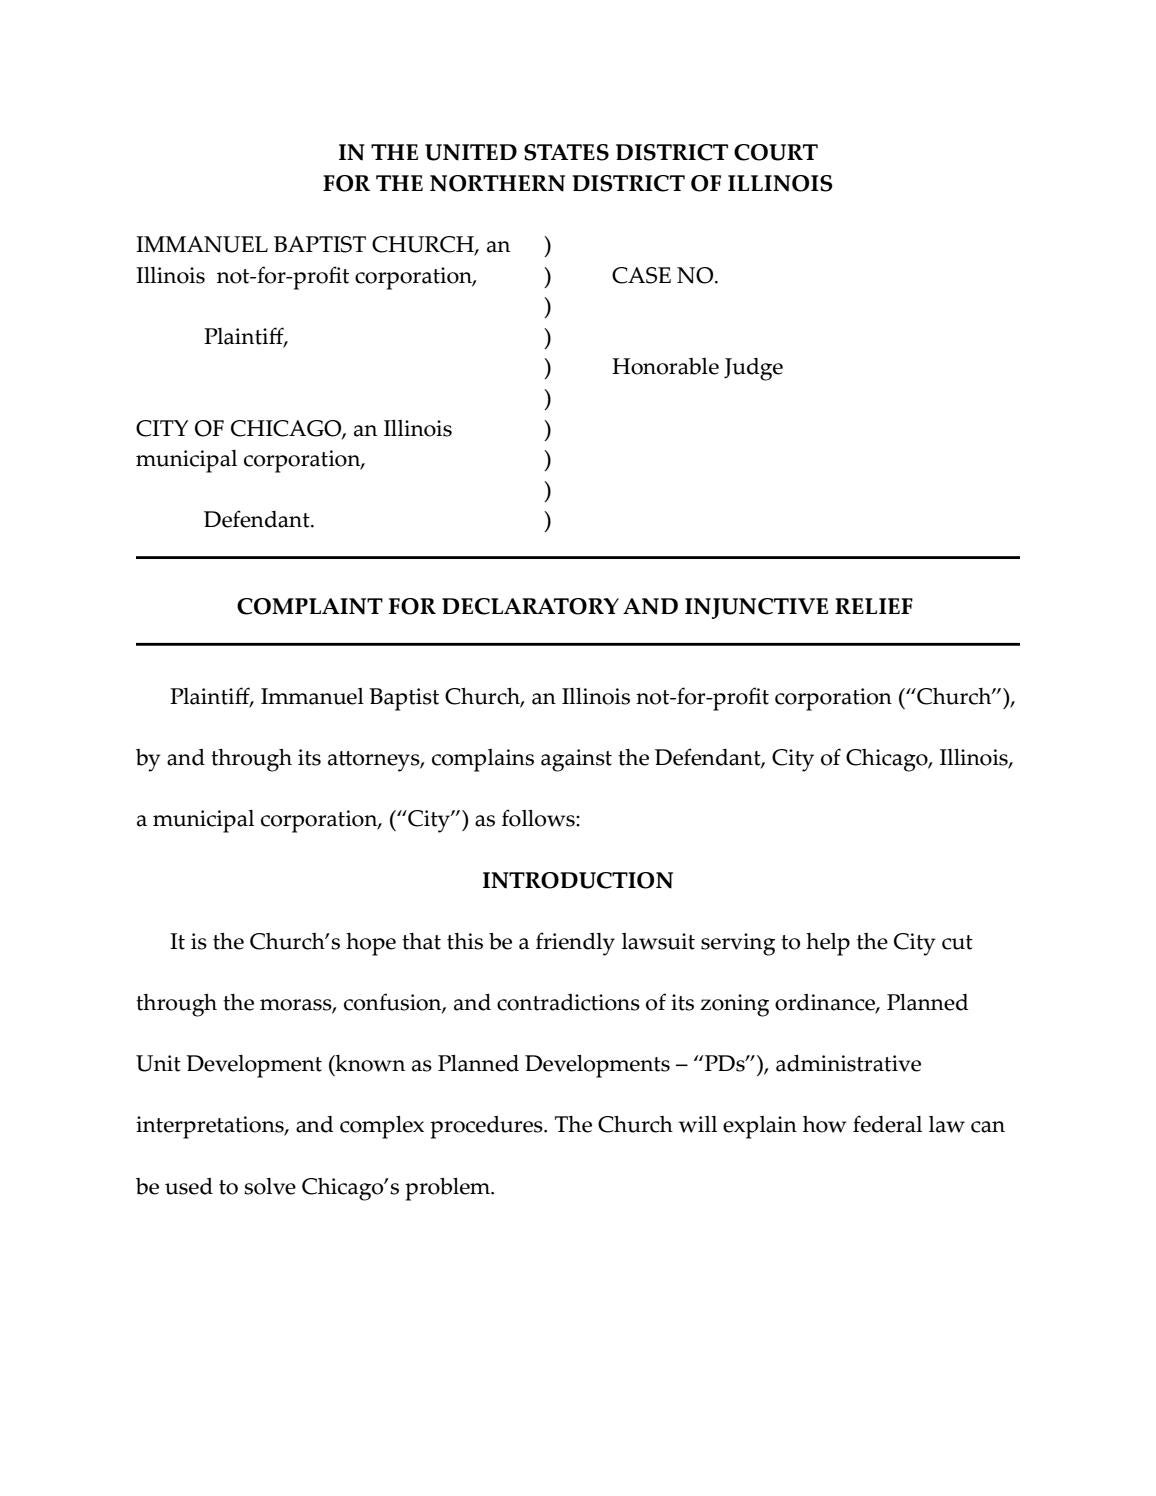 Immanuel Baptist Church Complaint Against City of Chicago by